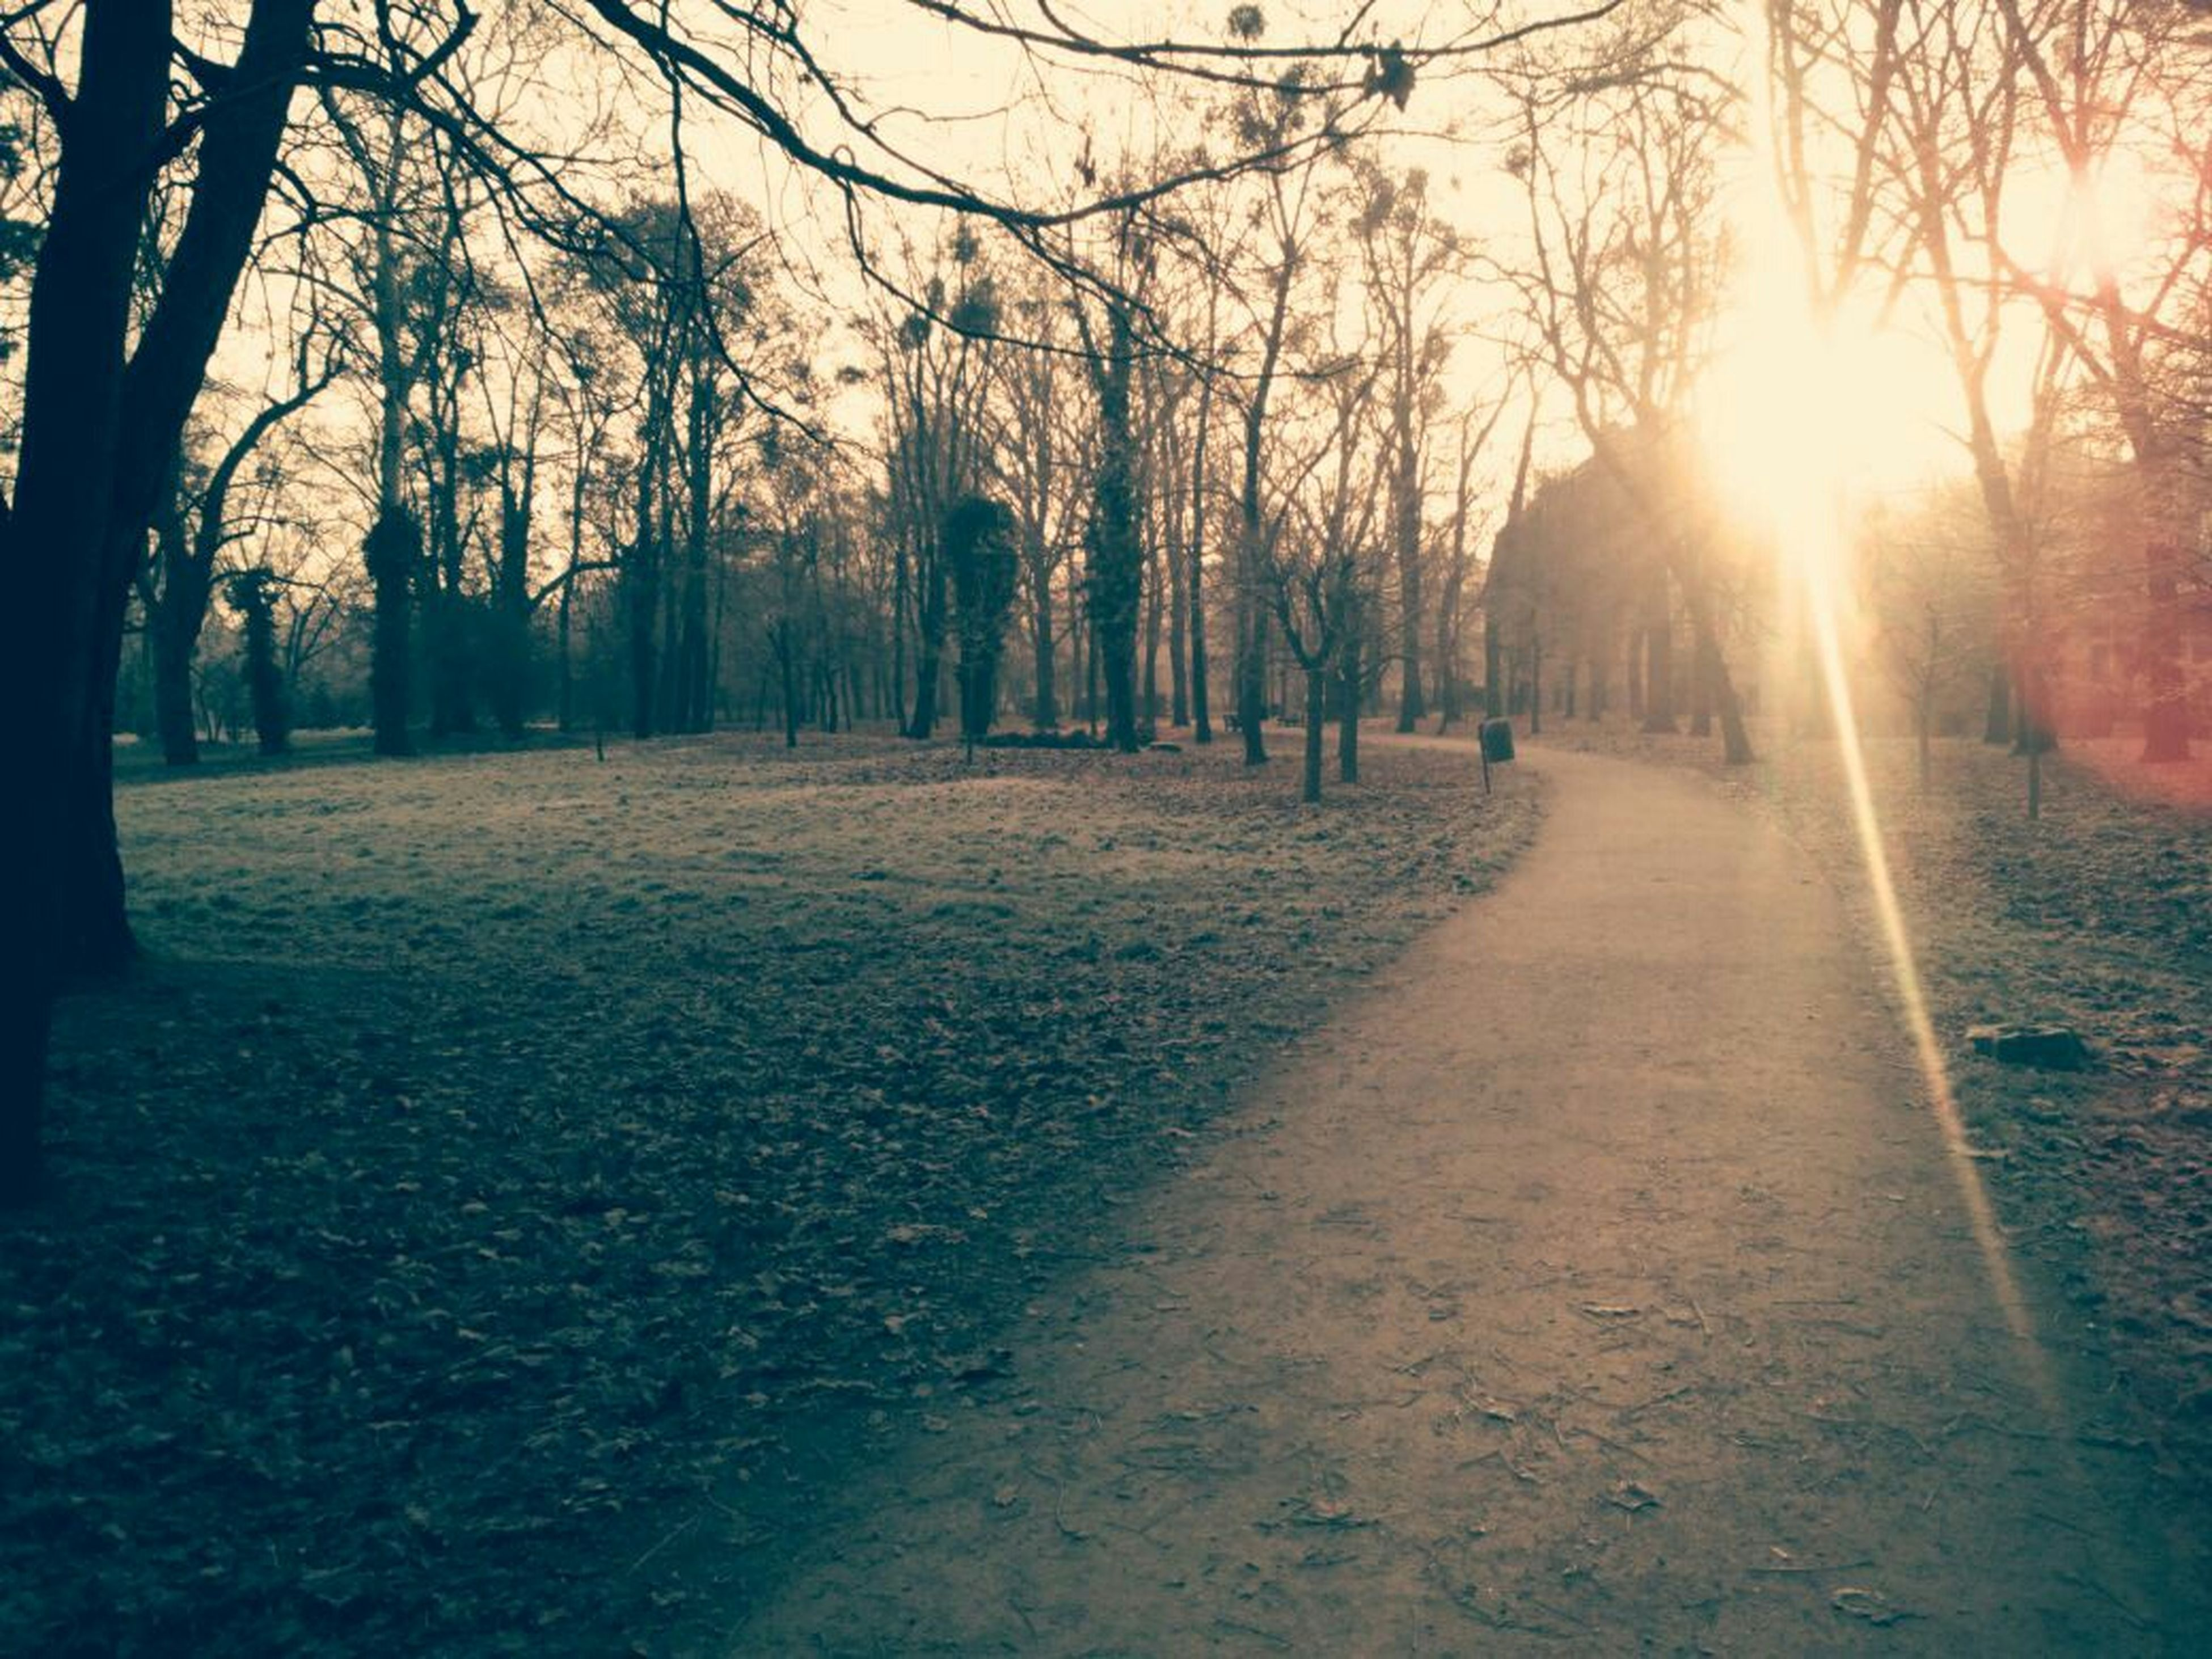 tree, sun, sunbeam, sunlight, lens flare, tranquility, tranquil scene, nature, tree trunk, sunset, the way forward, beauty in nature, scenics, growth, sunny, shadow, back lit, landscape, branch, footpath